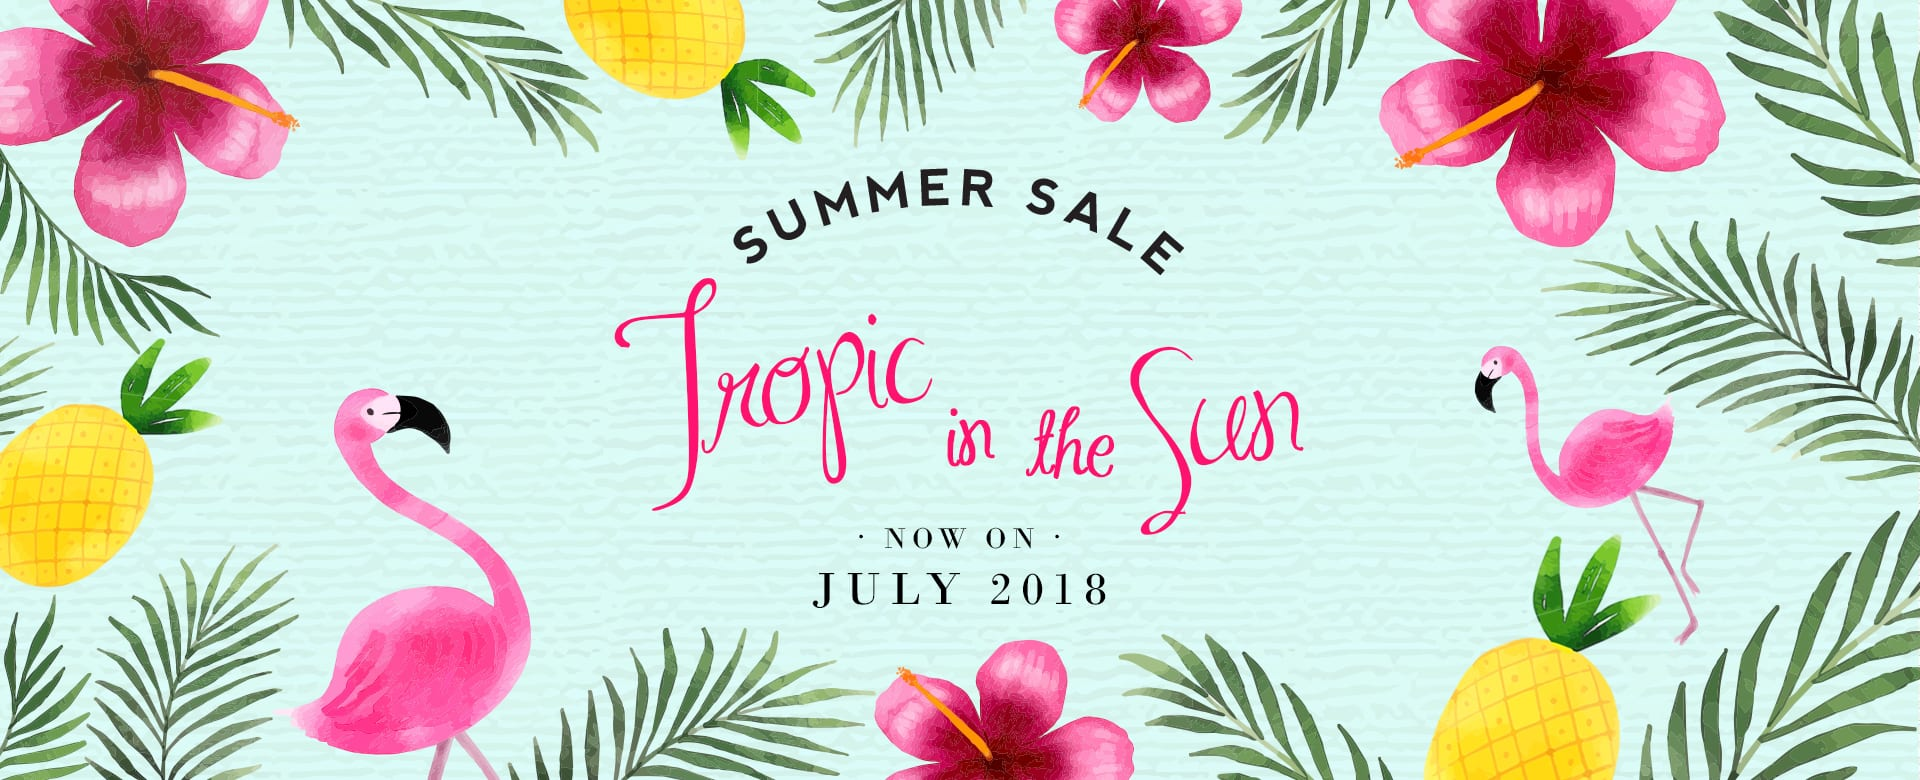 Summer Sale -Tropic like it's hot!